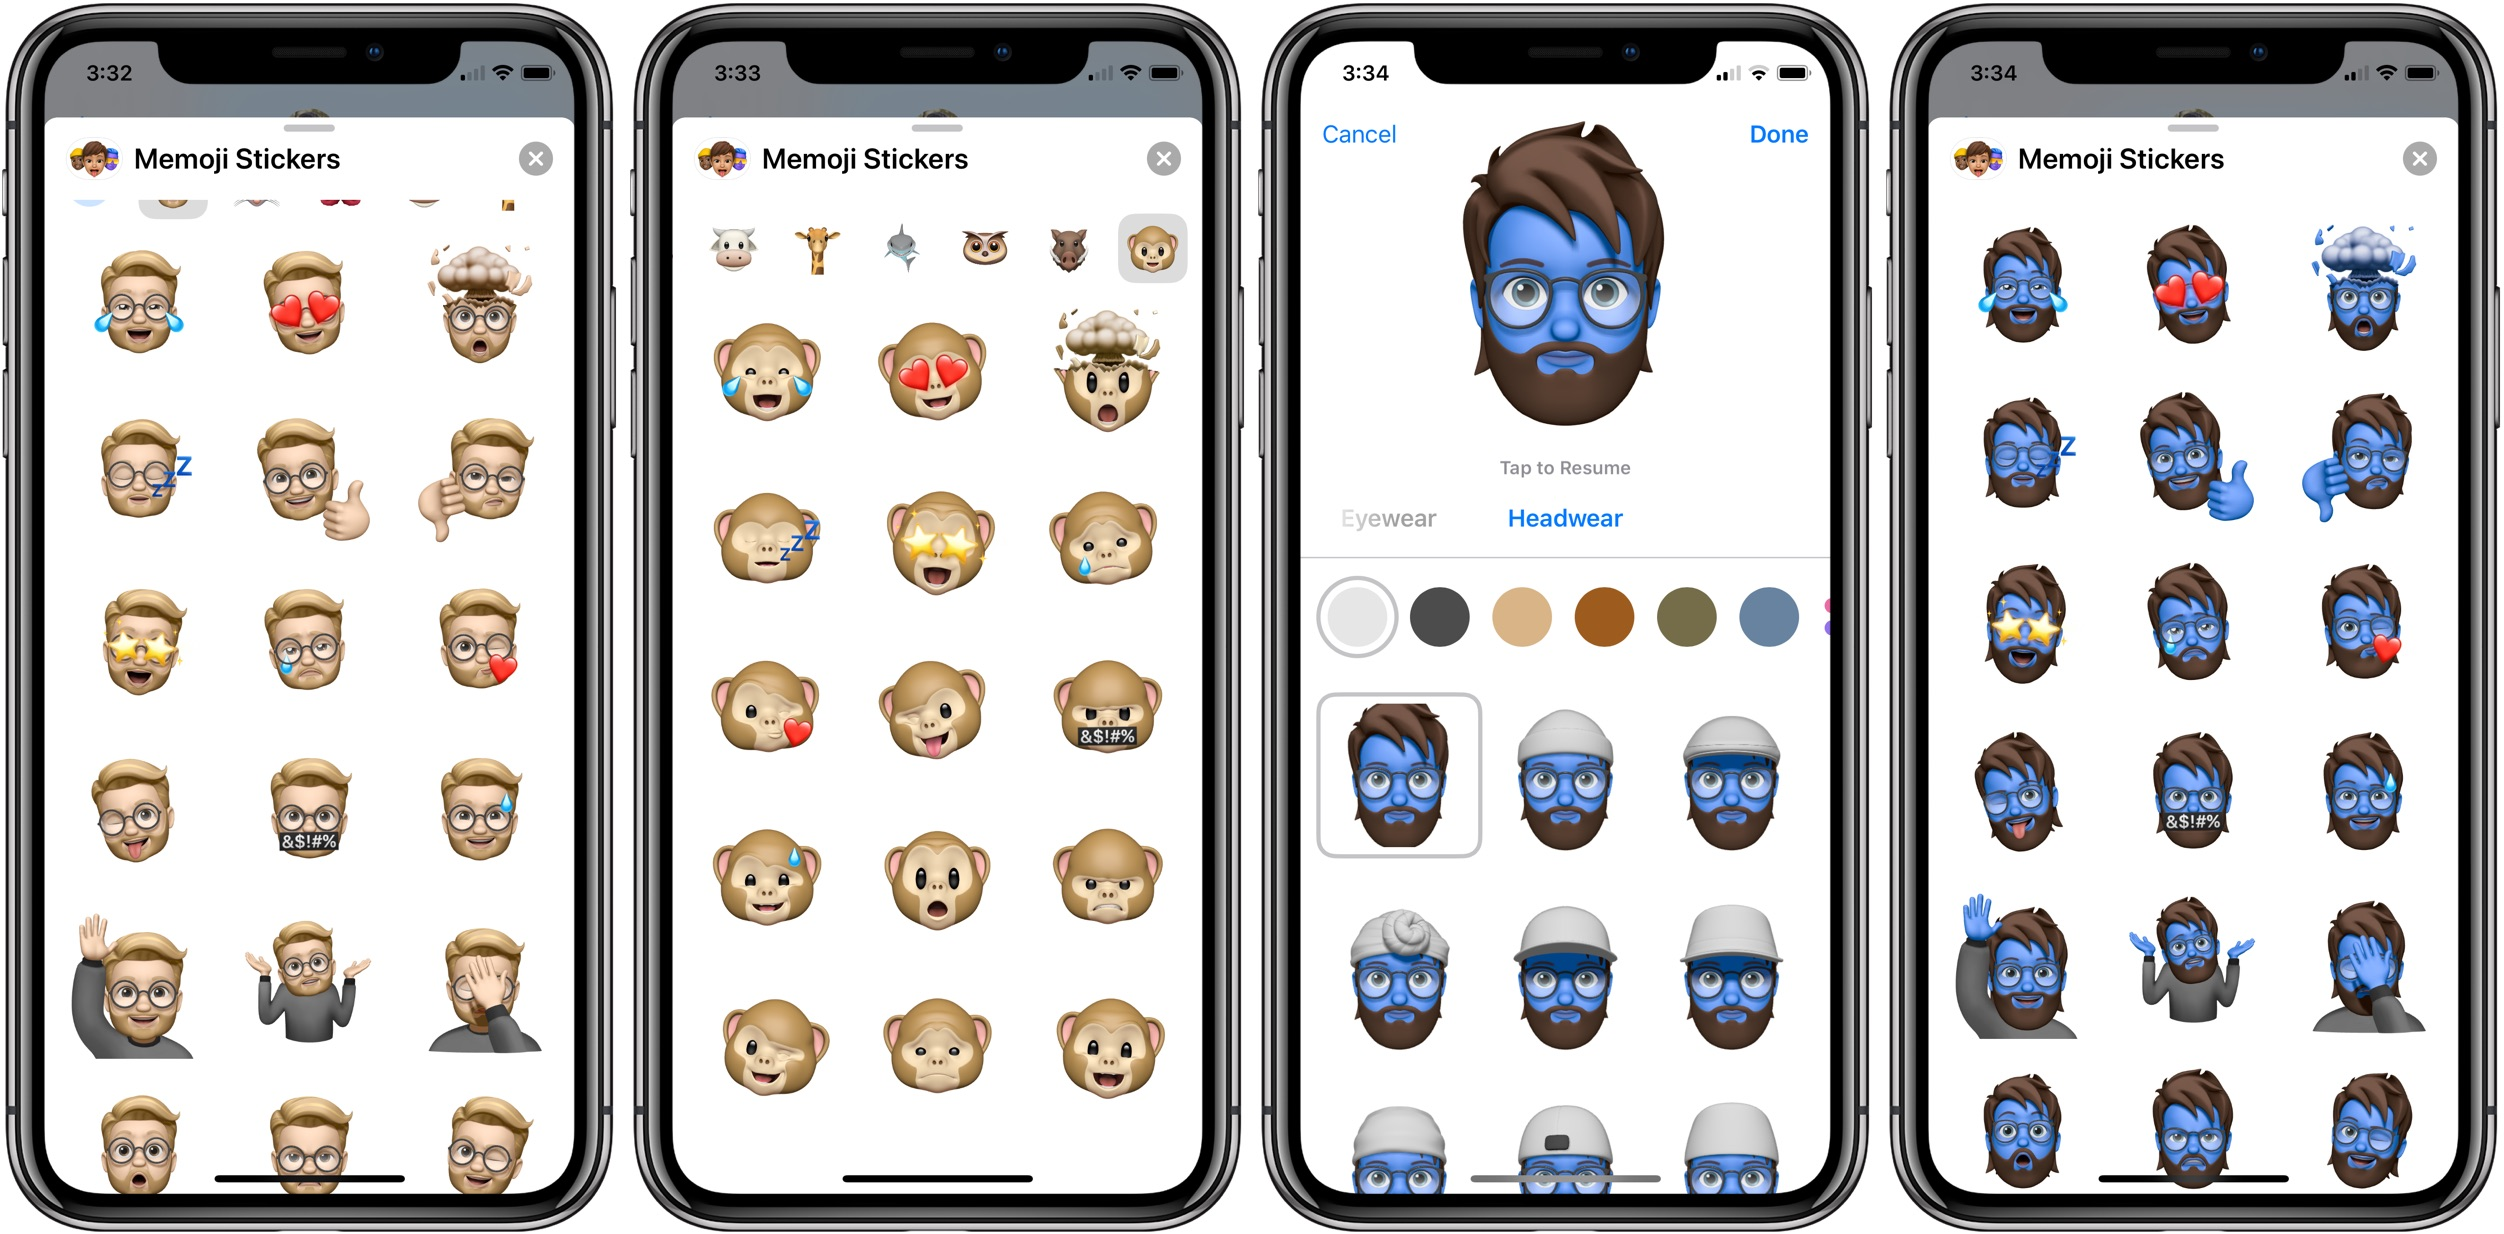 How to use Memoji Stickers on iPhone walkthrough